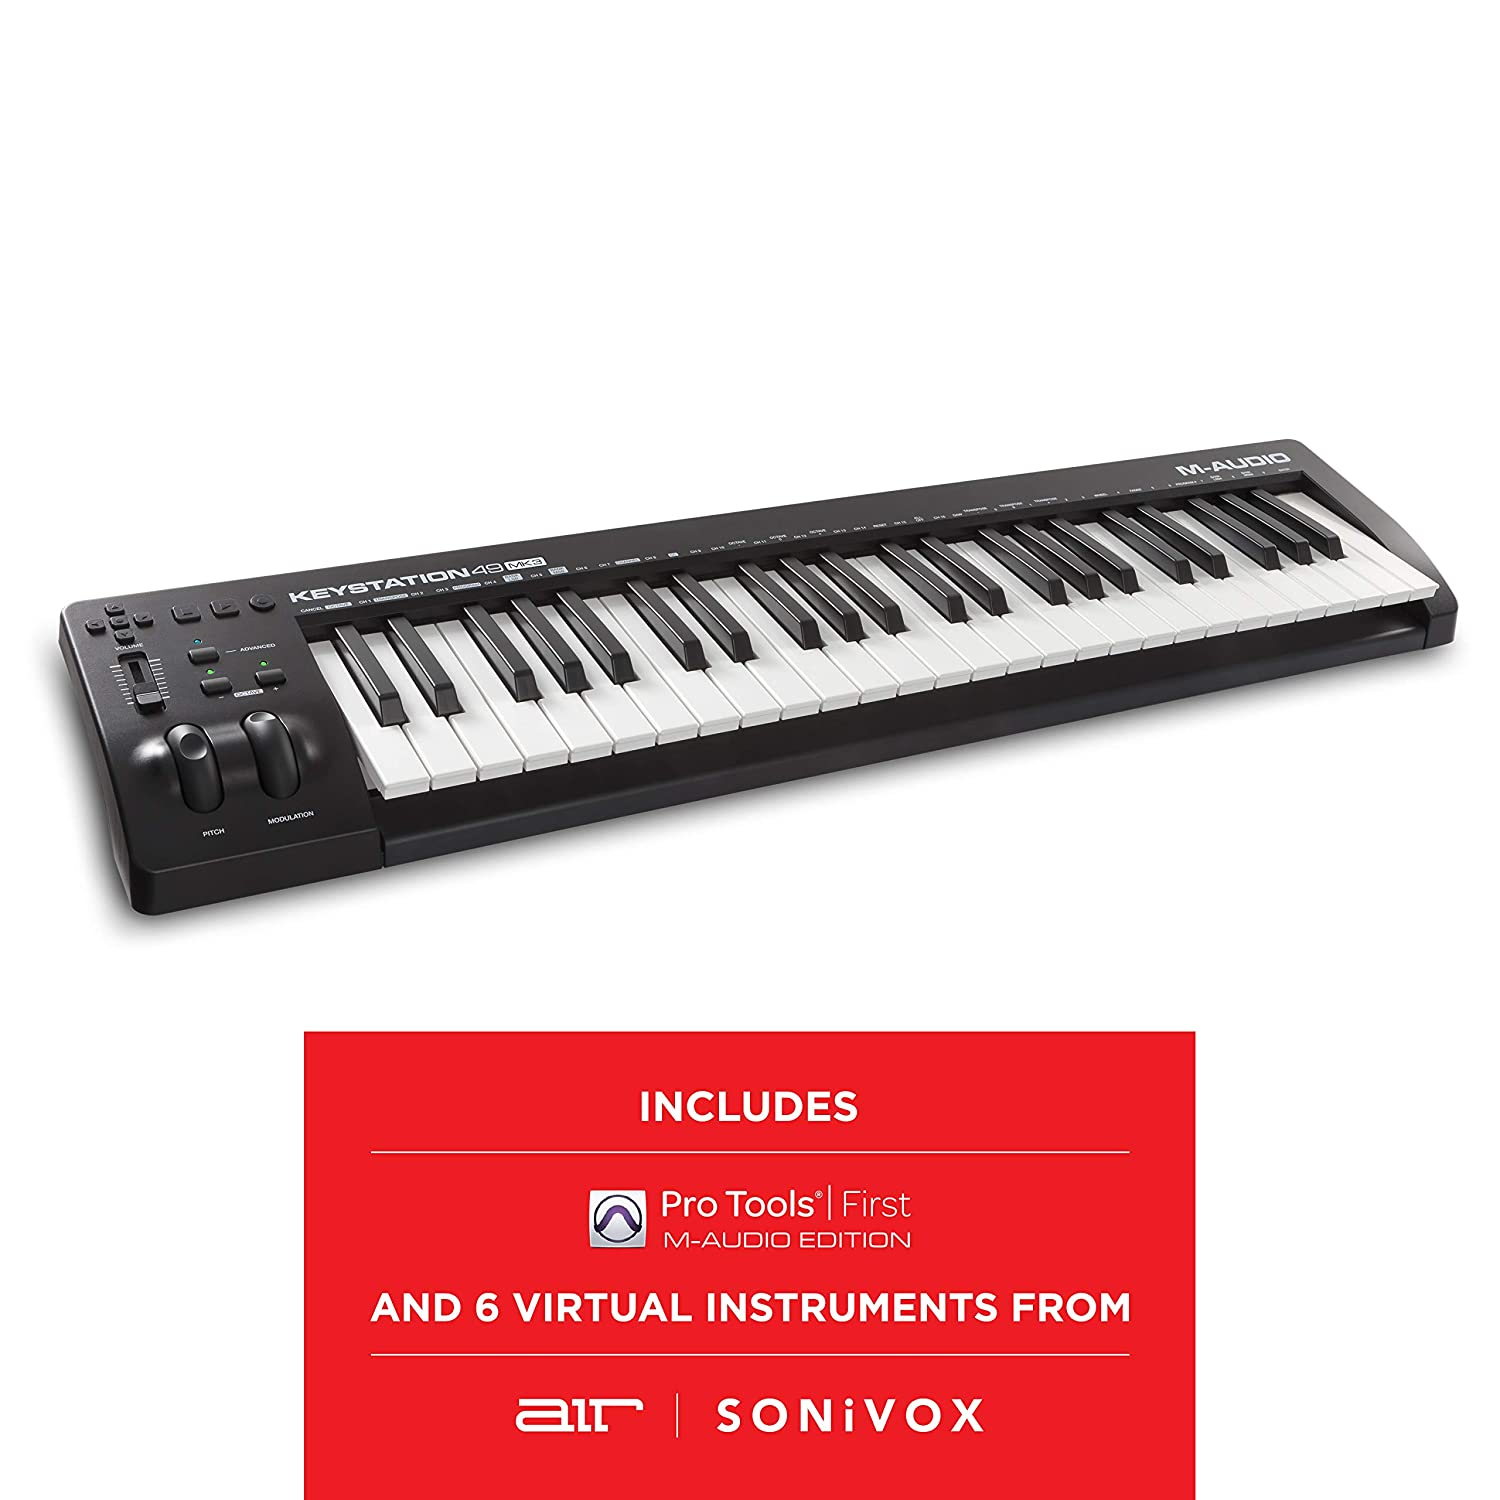 Top 13 Best MIDI Controllers for Beginners (2020 Updated) 8